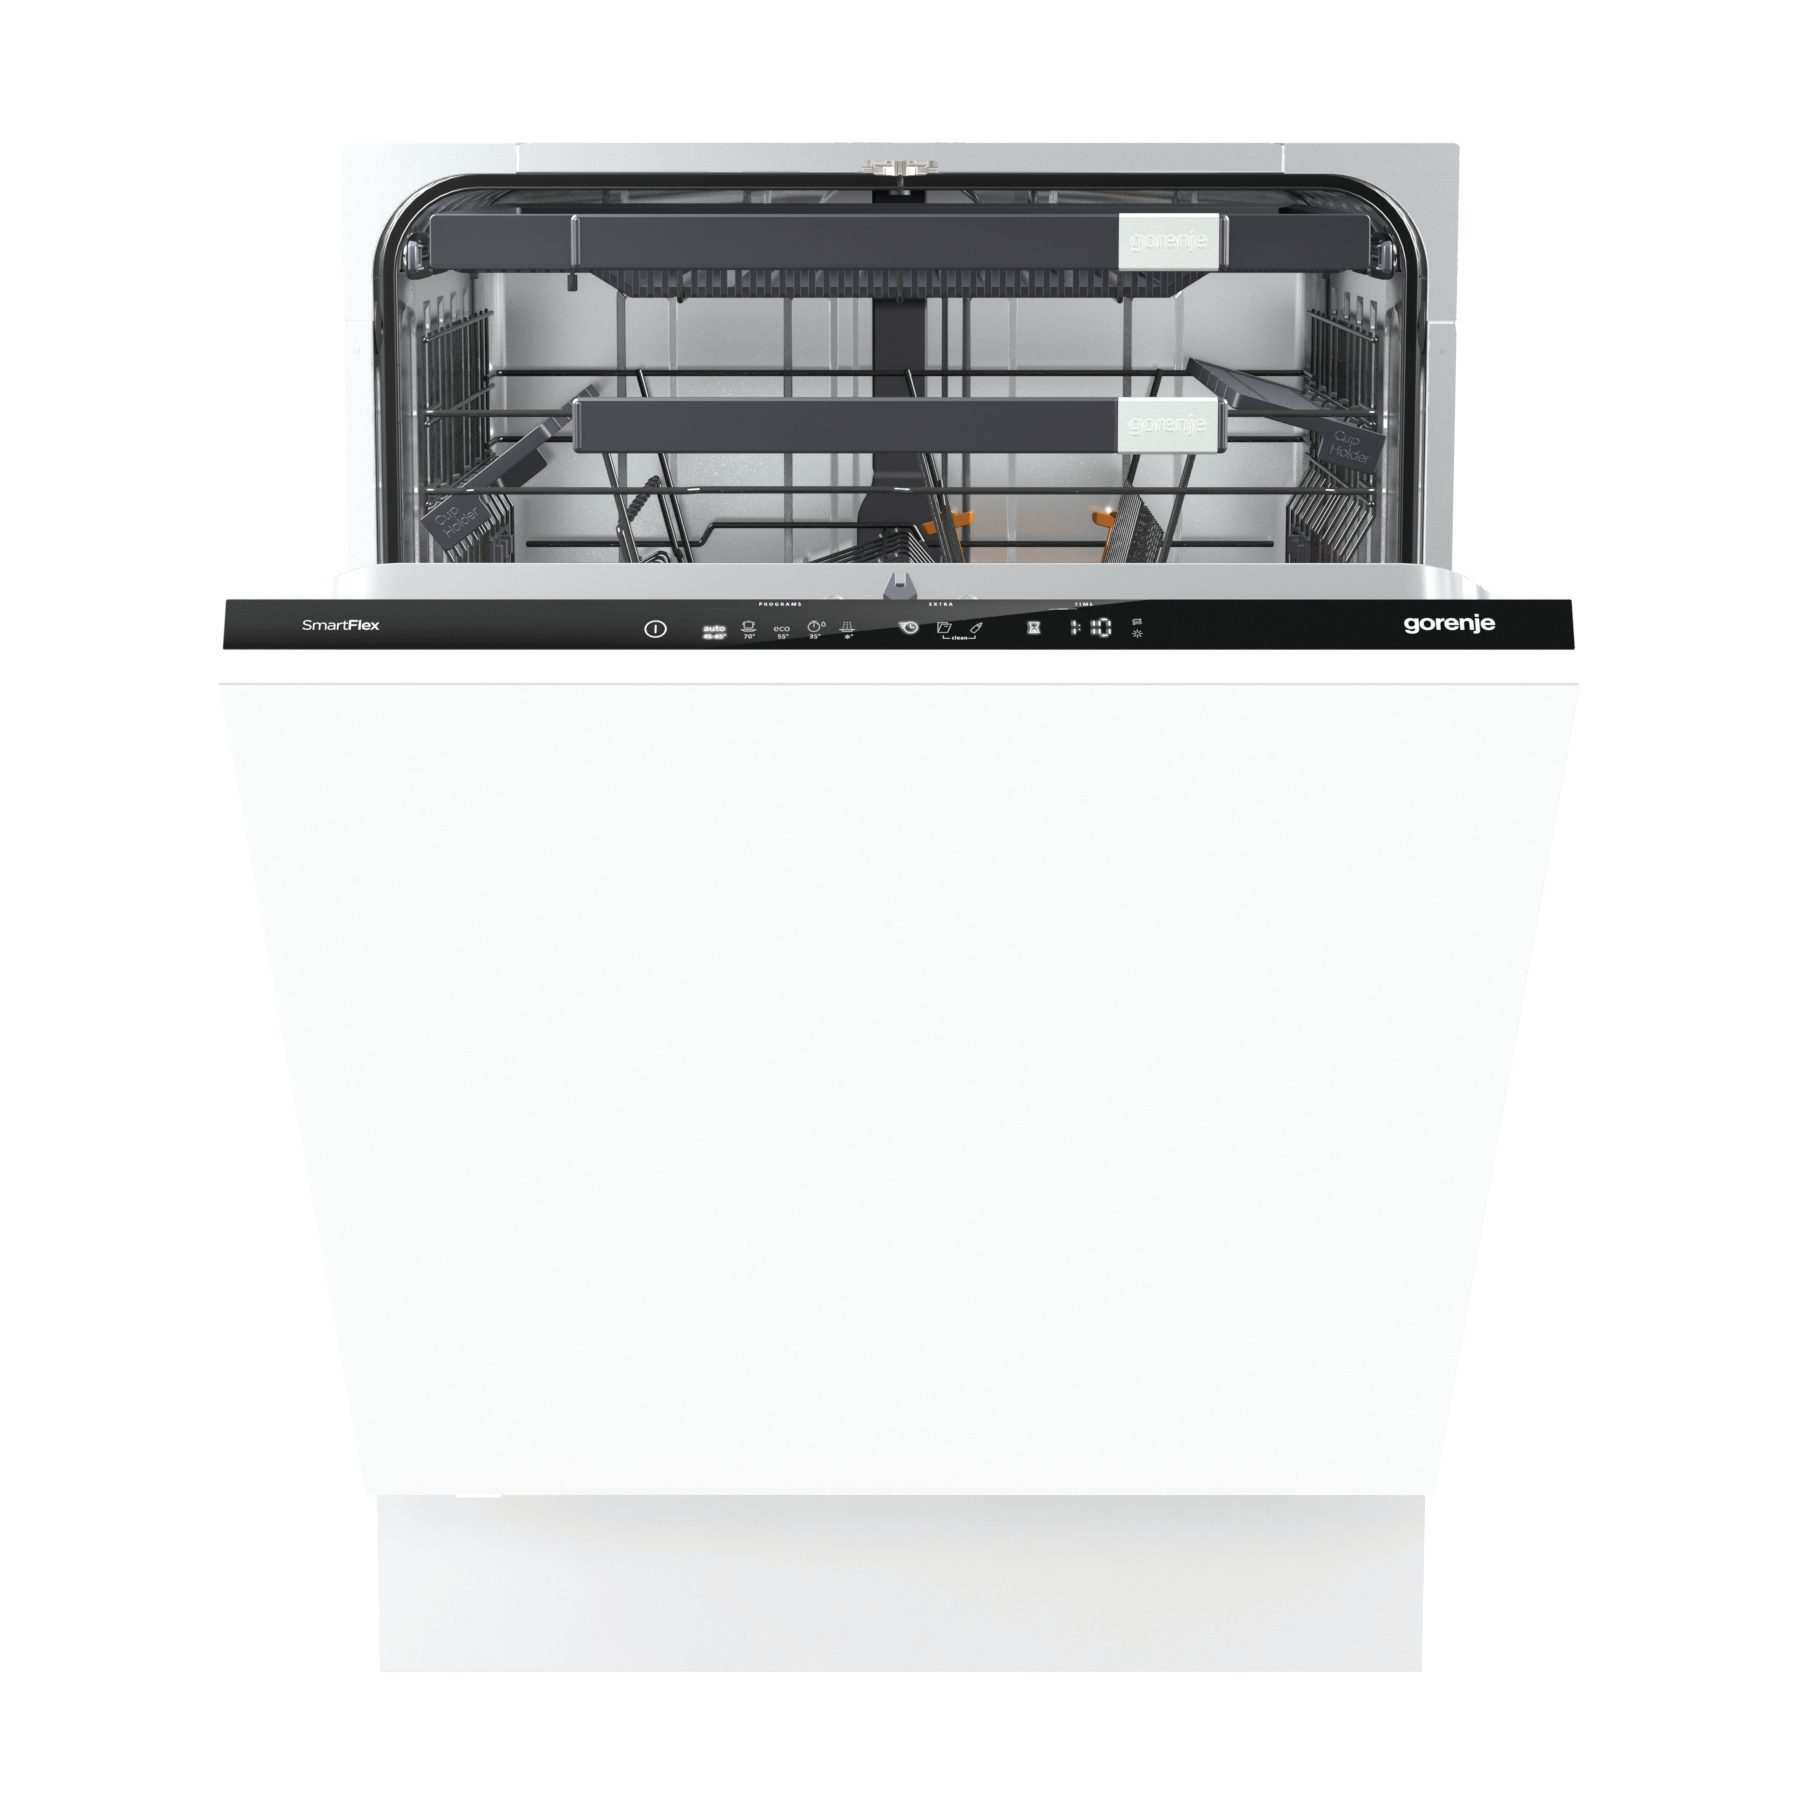 Fully integrated dishwasher GV66260UK - Gorenje